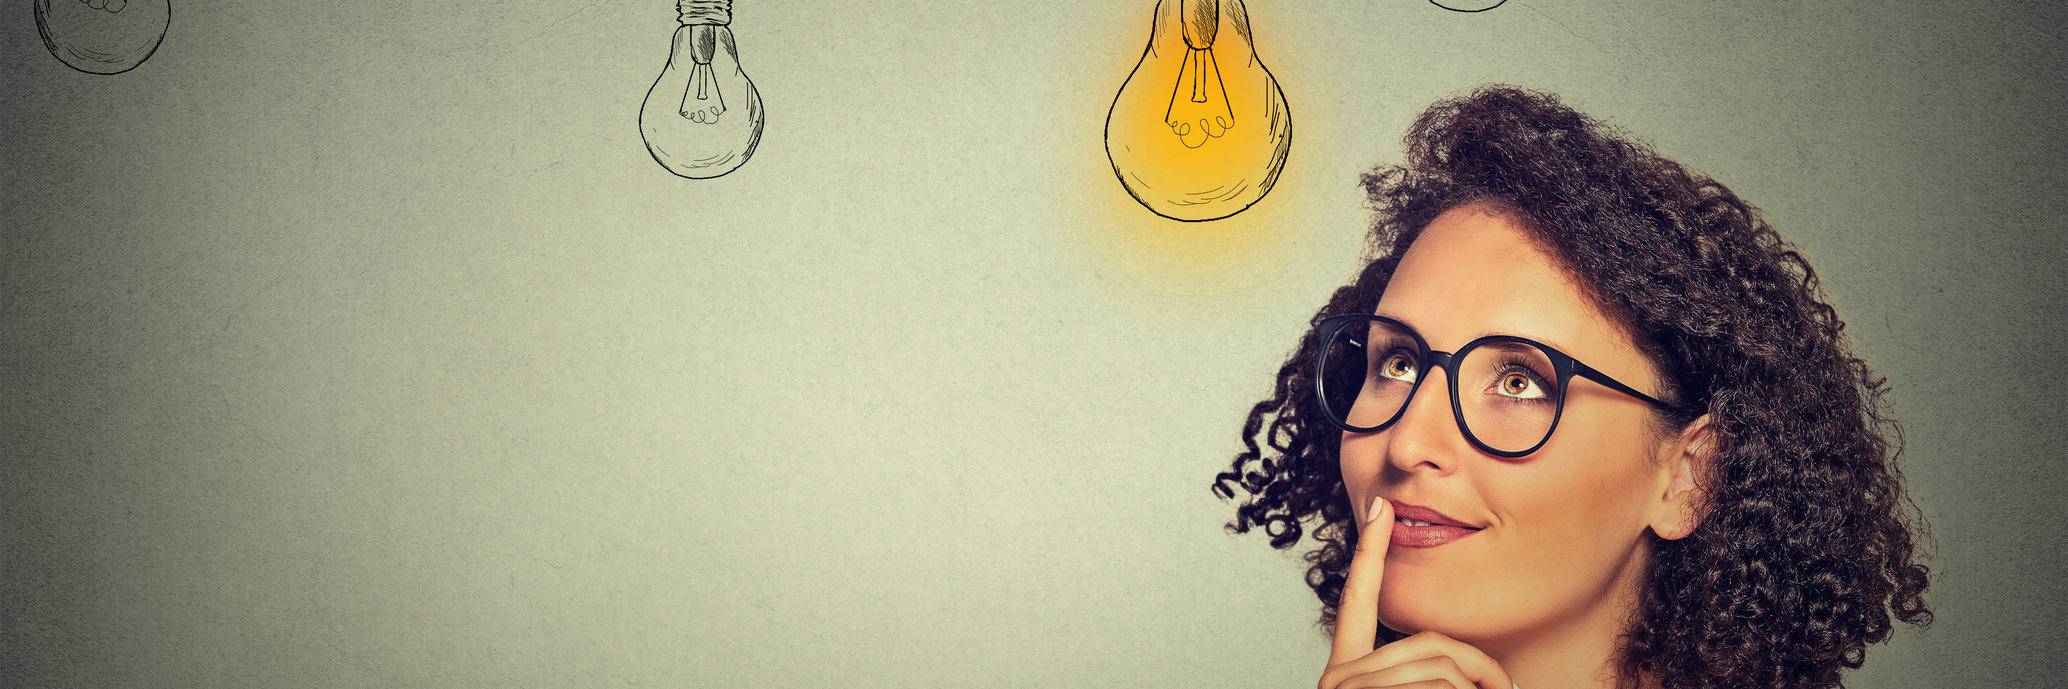 A woman with a lit up light bulb.